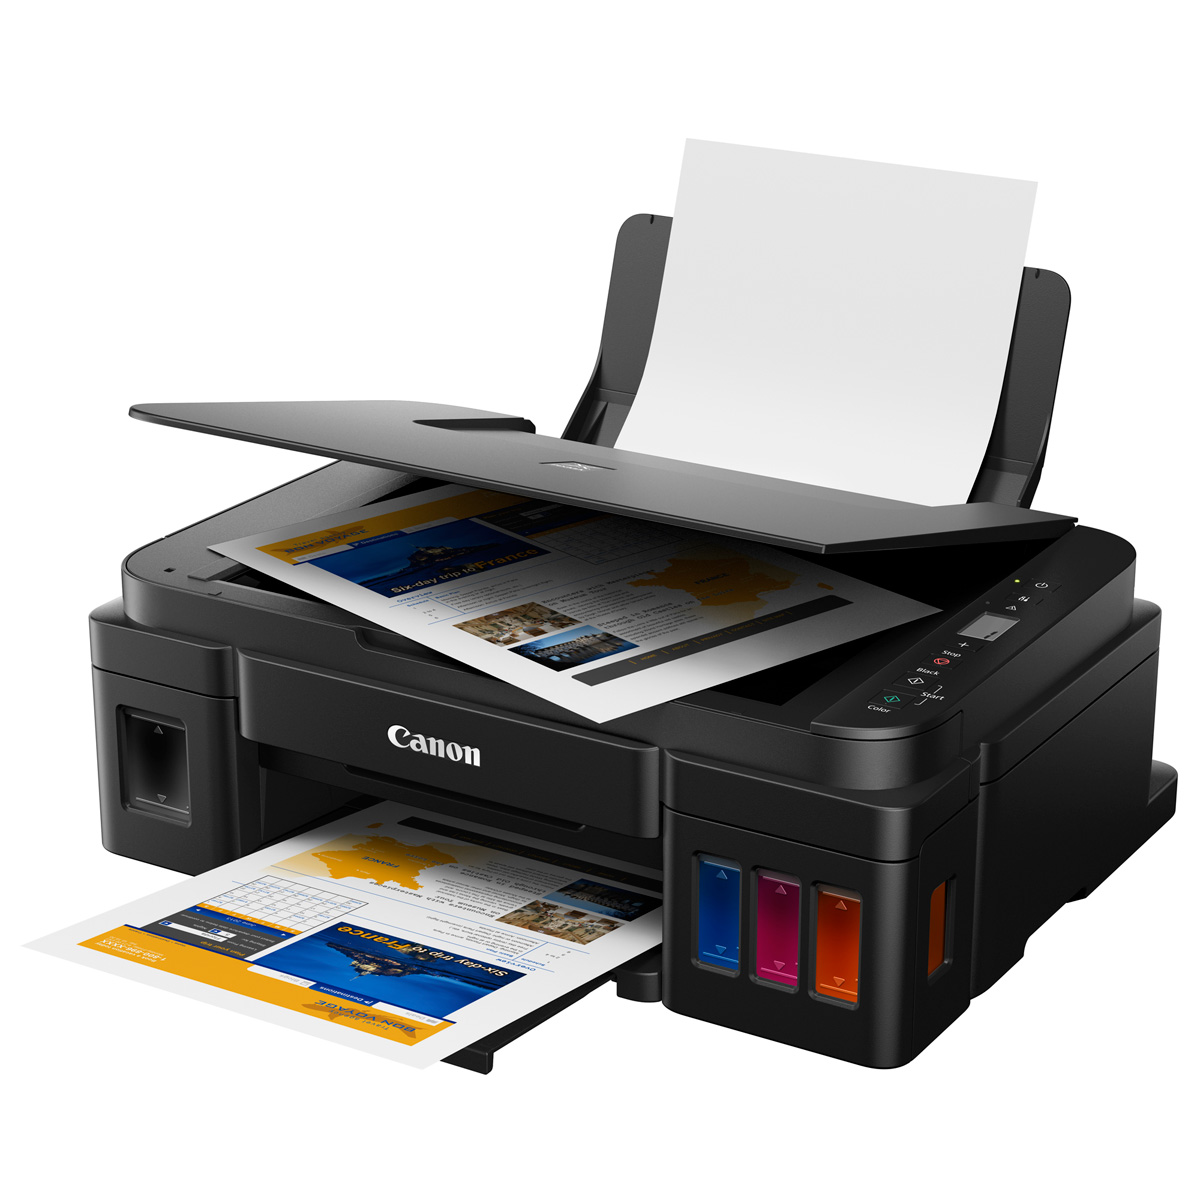 Canon G2010 Color Printer